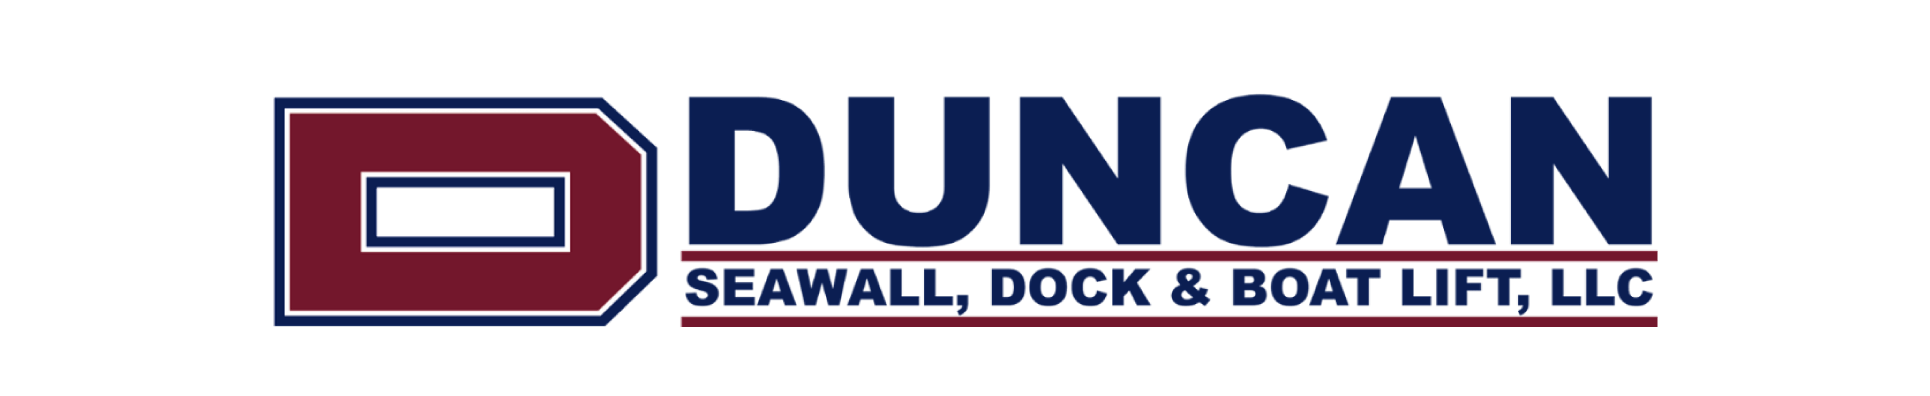 Dunan Seawall Dredging Services In Southwest Florida